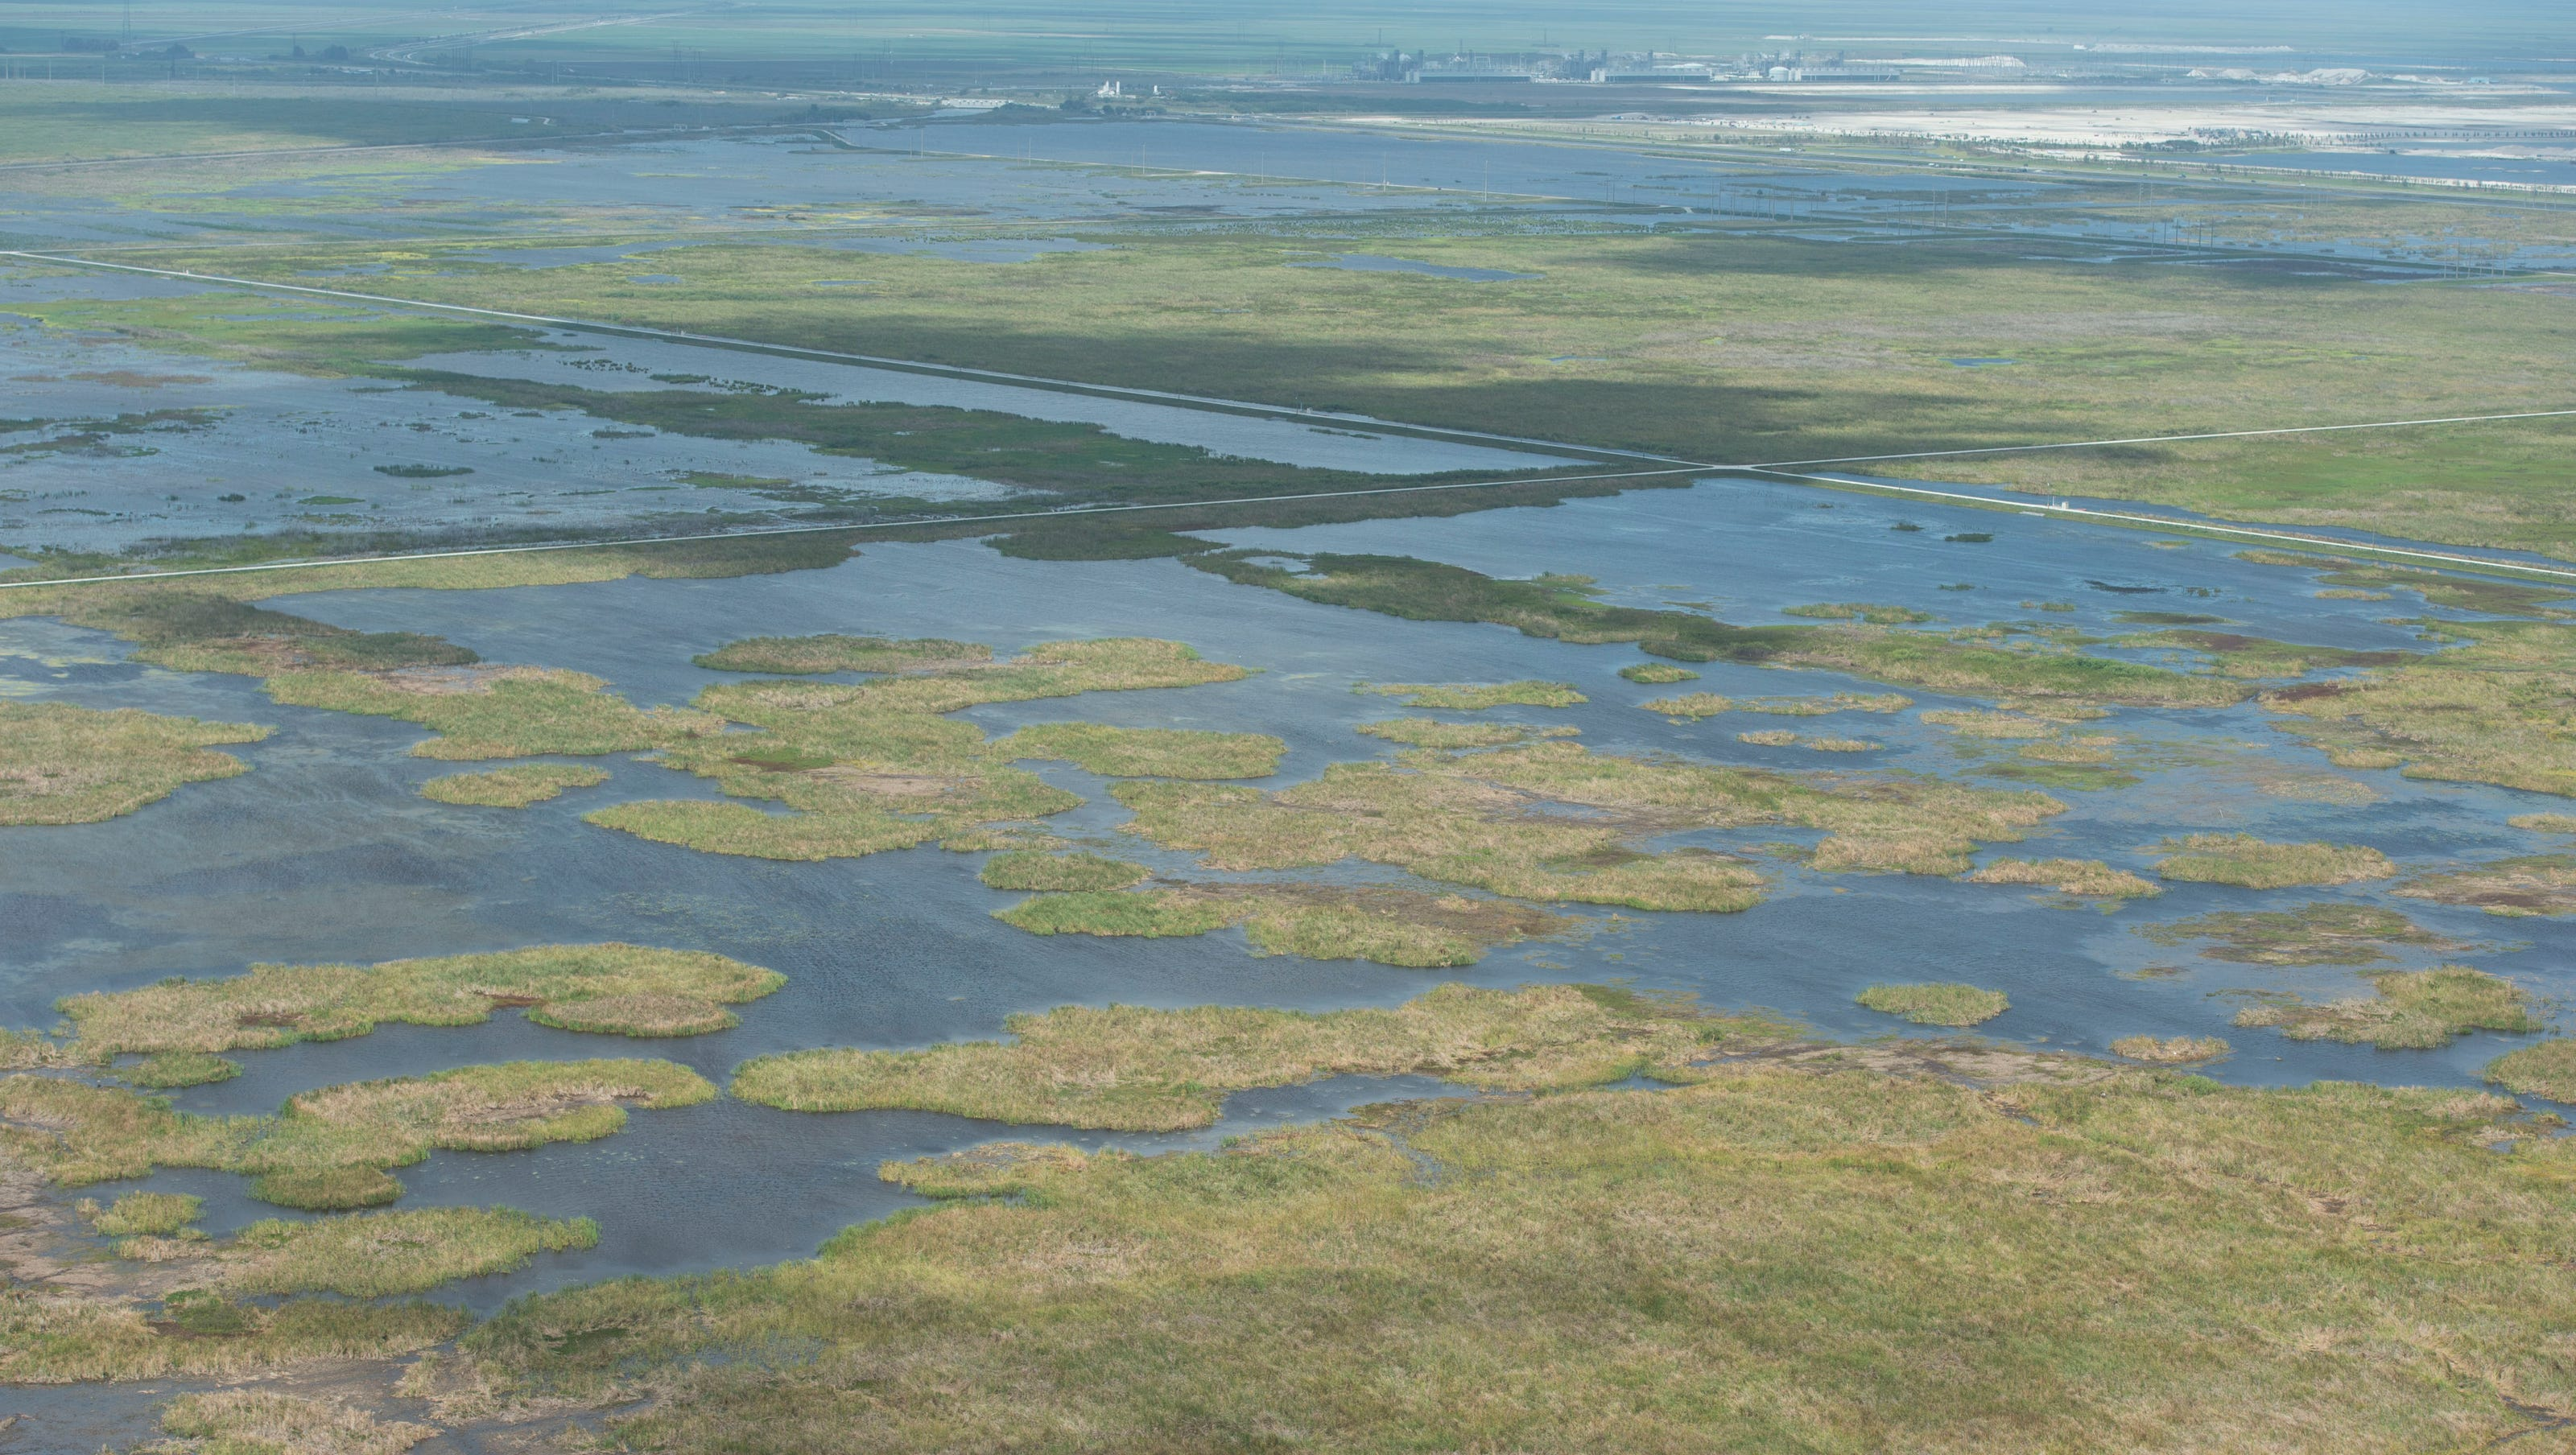 Florida congressional delegation asks Biden for $725 million for Everglades restoration - TCPalm